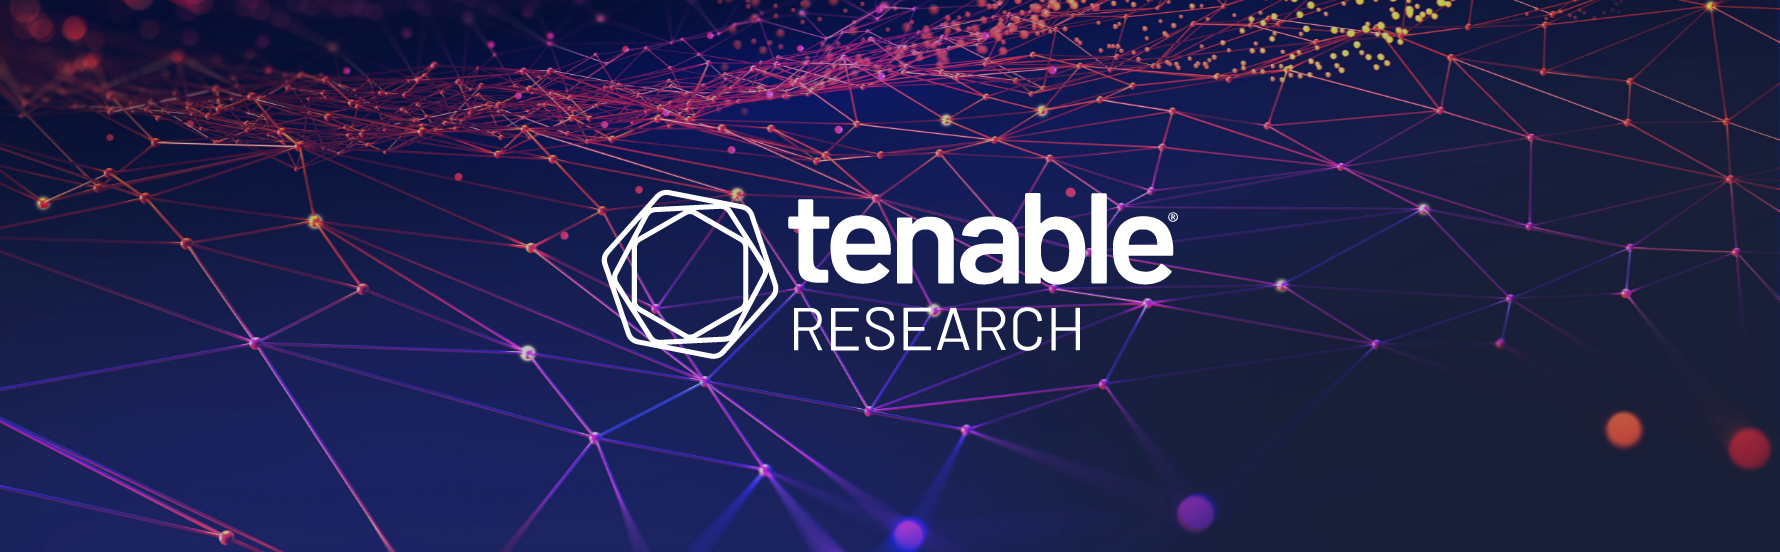 How to Use Tenable.io WAS to Find and Fix Sensitive Information Exposure in Microsoft Power Apps